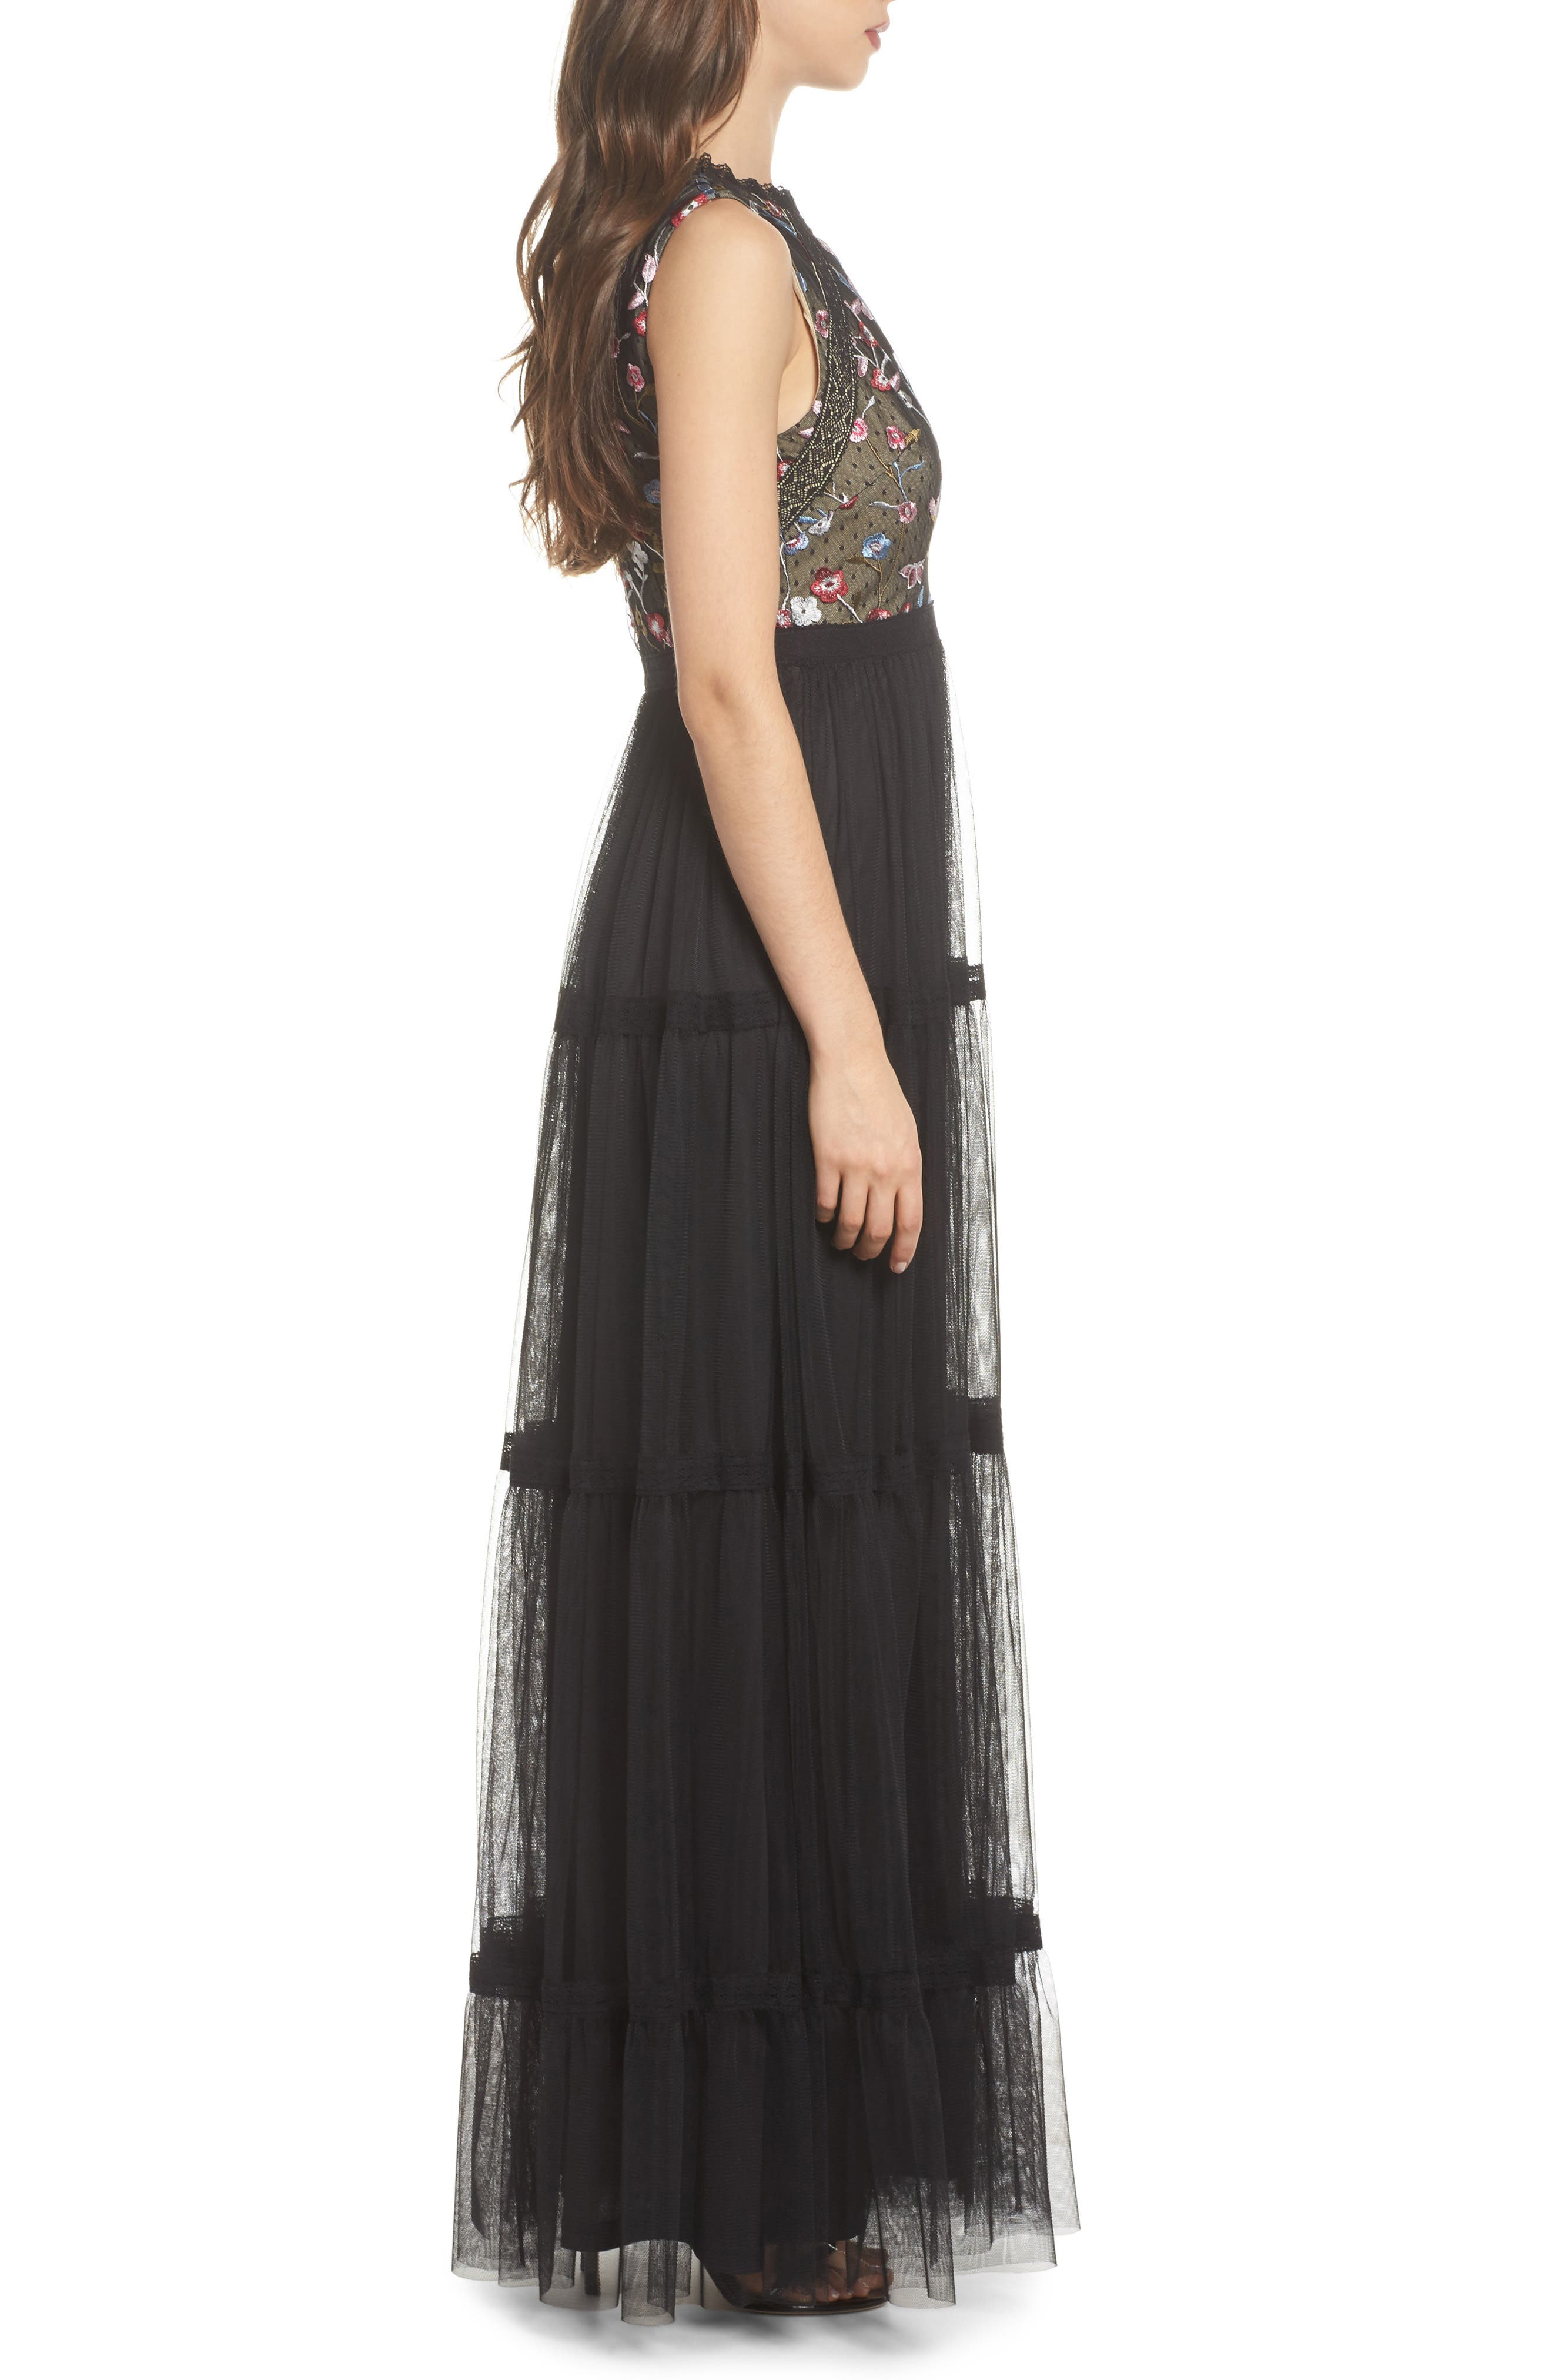 ADRIANNA PAPELL,                             Embroidered Tiered Tulle Gown,                             Alternate thumbnail 3, color,                             001